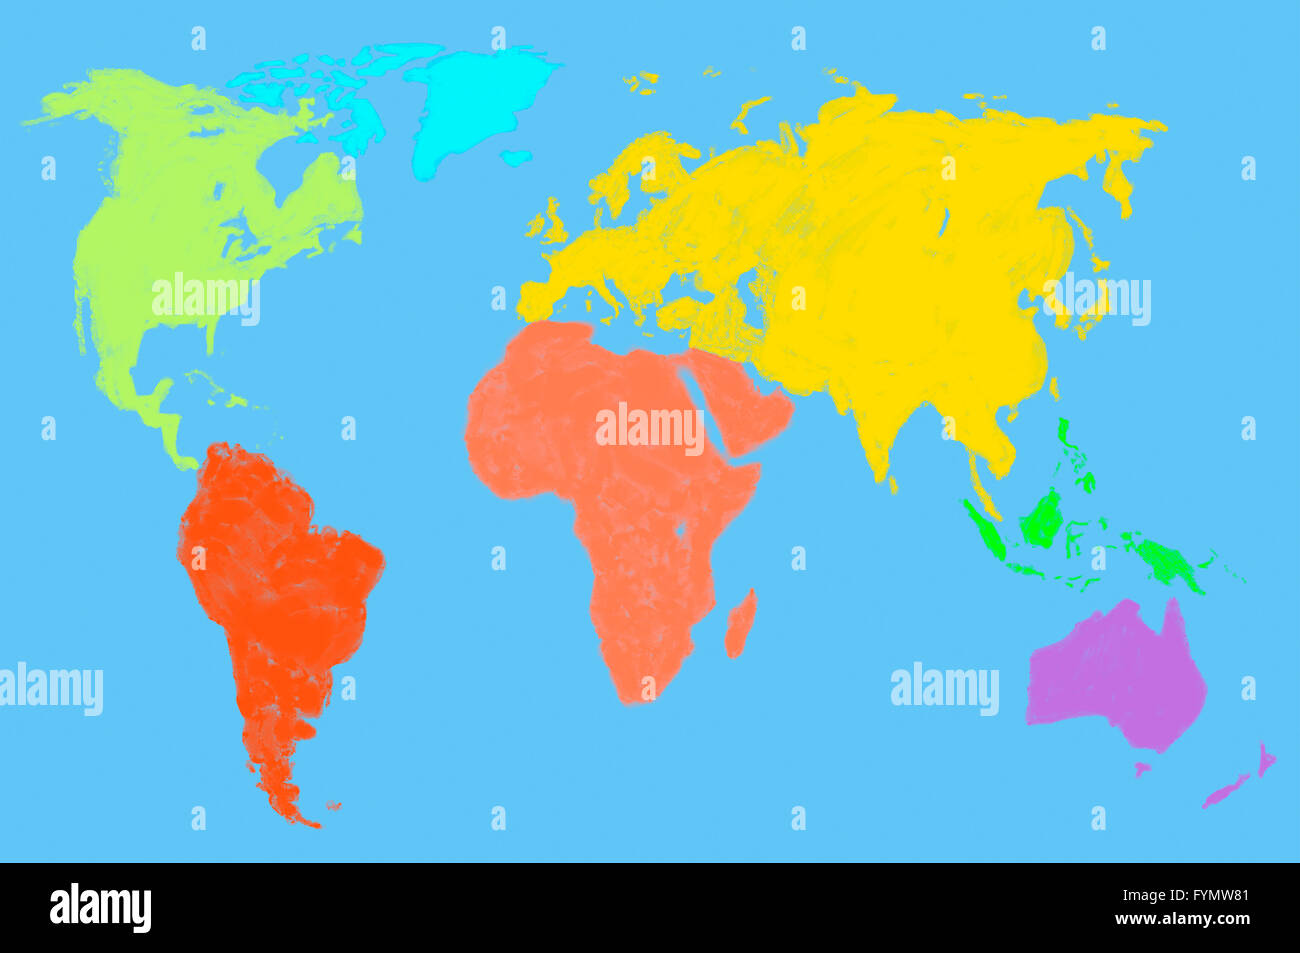 multicolored world map, isolated - Stock Image